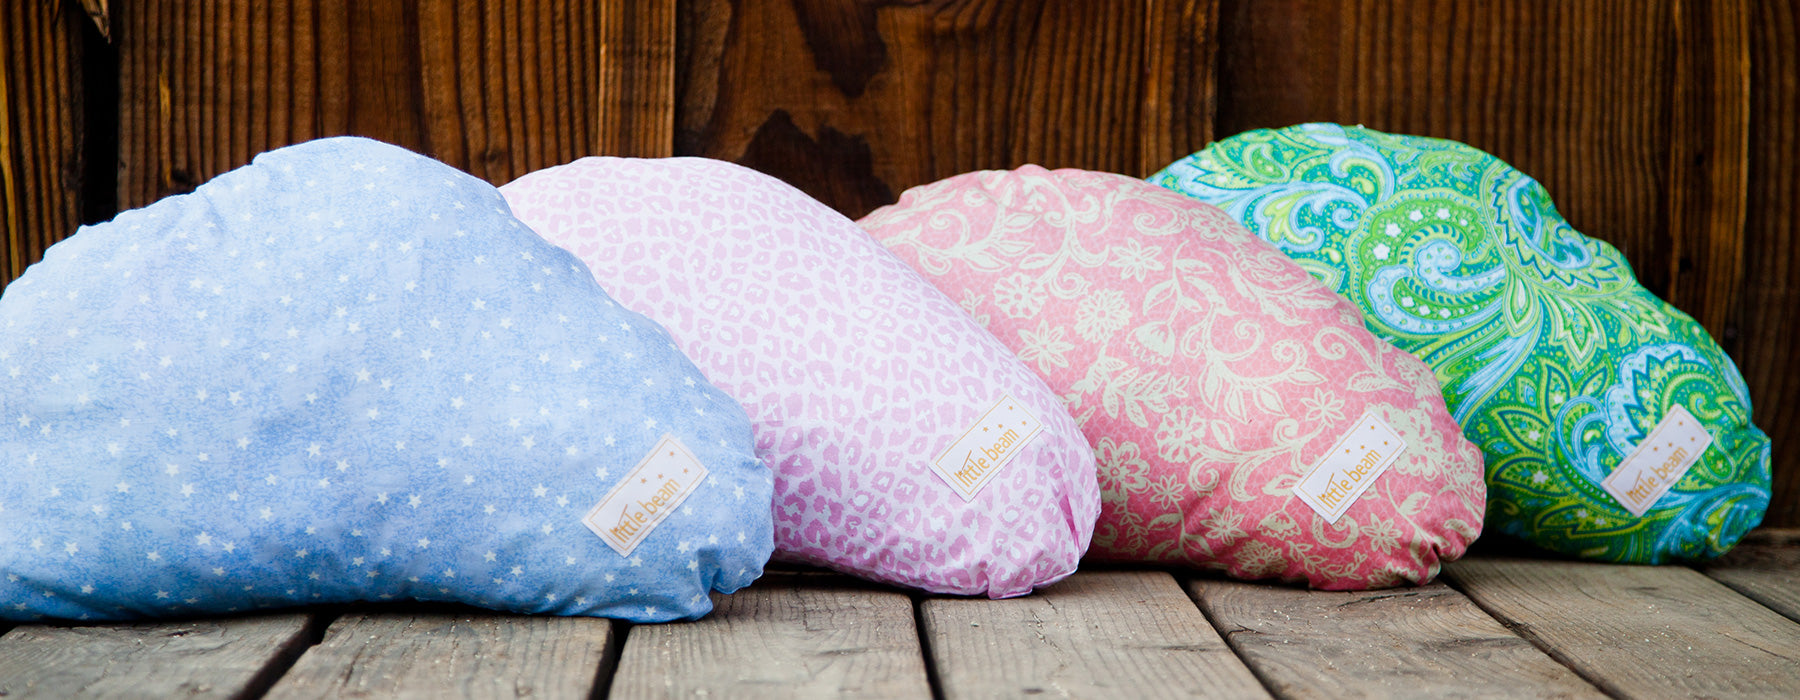 littlebeam Nursing Pillows